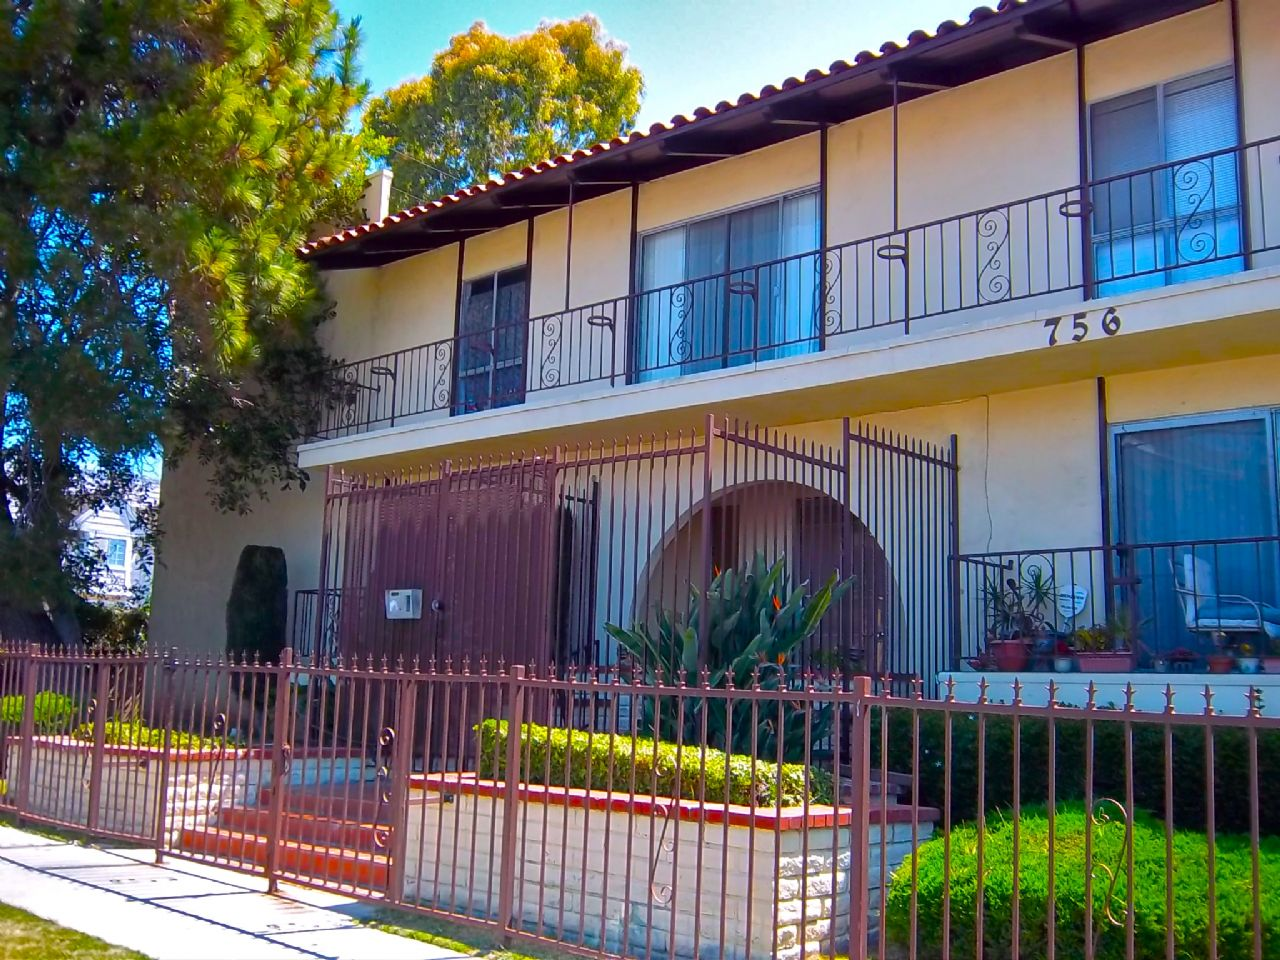 Cheap Inglewood Apartments To Rent In Inglewood Ca Page 5